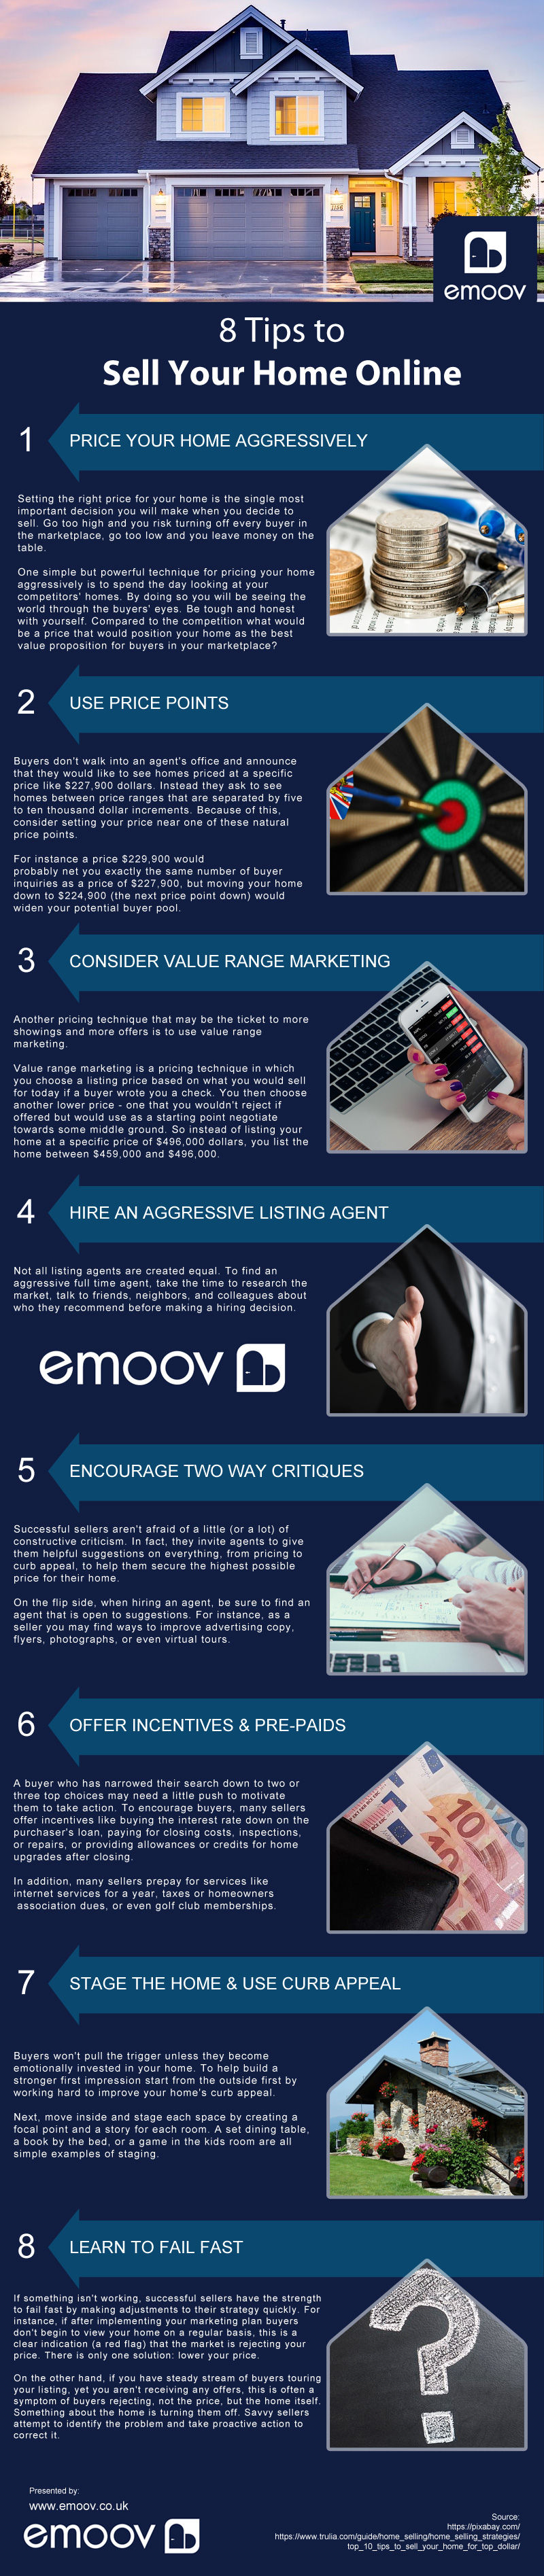 8 Tips to Sell Your Home Online [infographic]